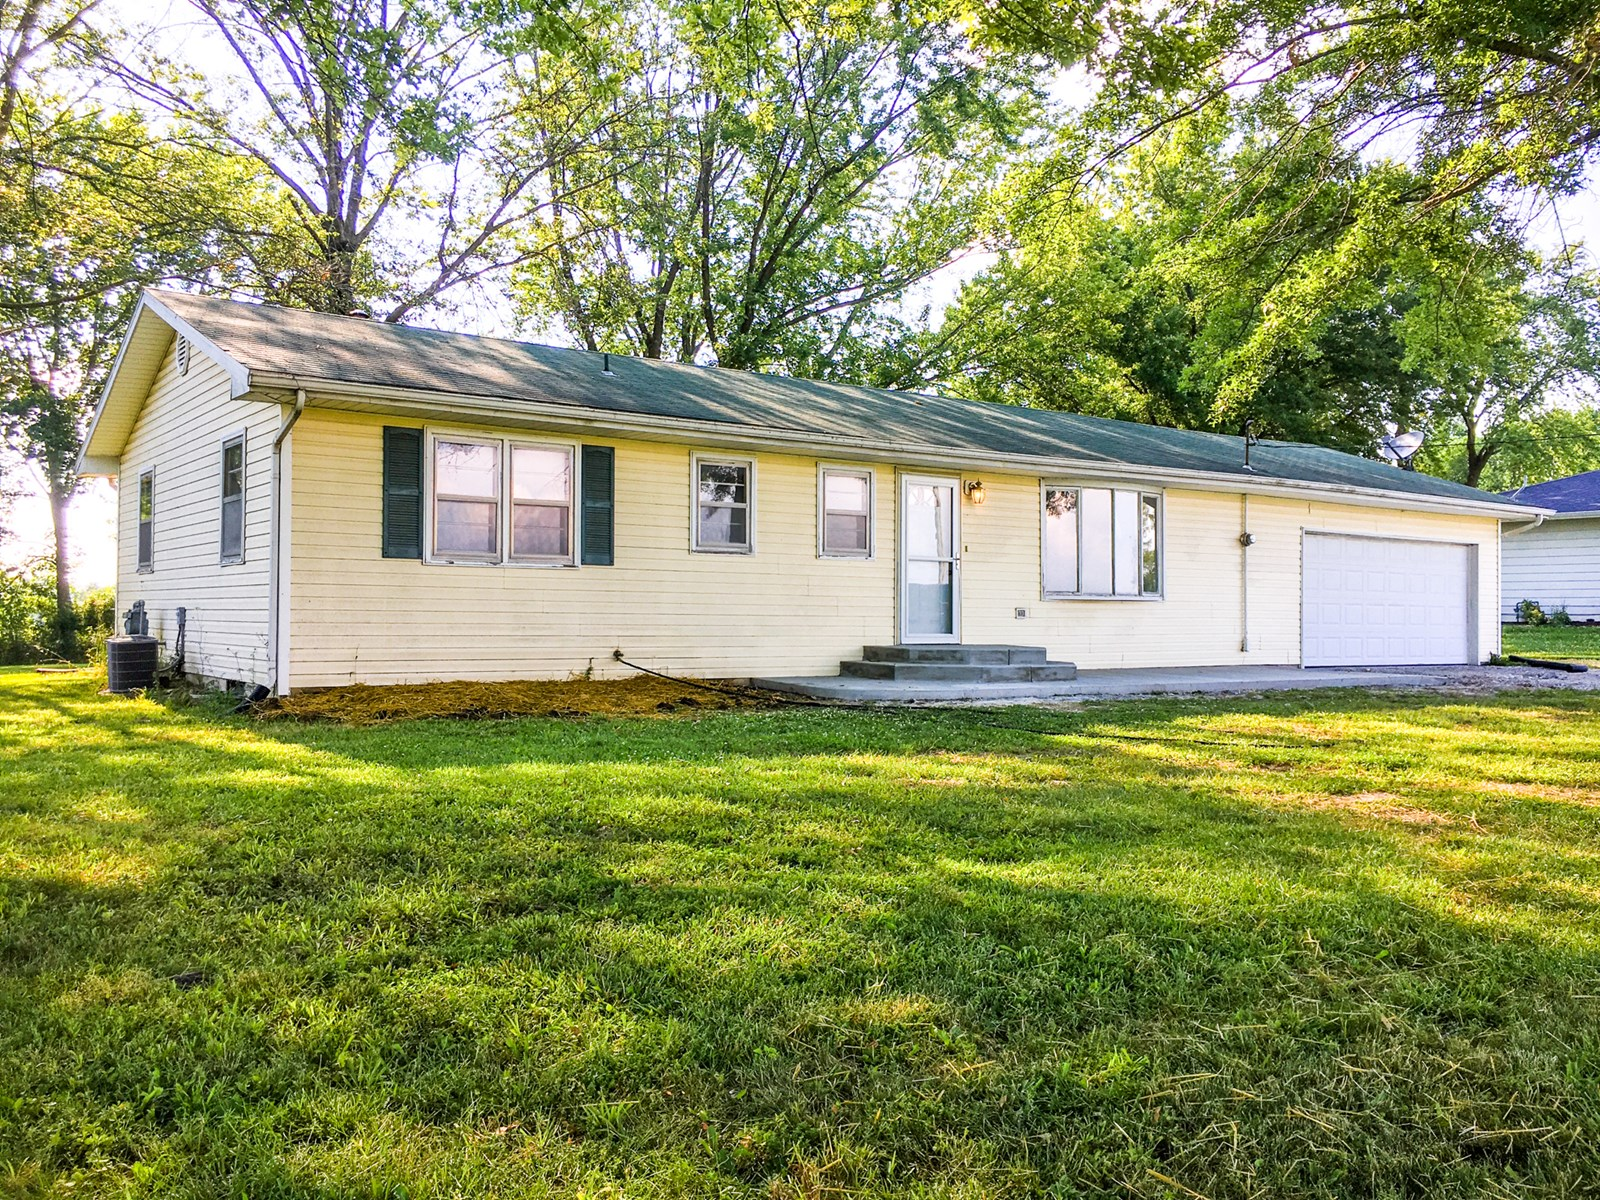 3BR, 1.5BA House outside City Limits of Prairie Home, MO